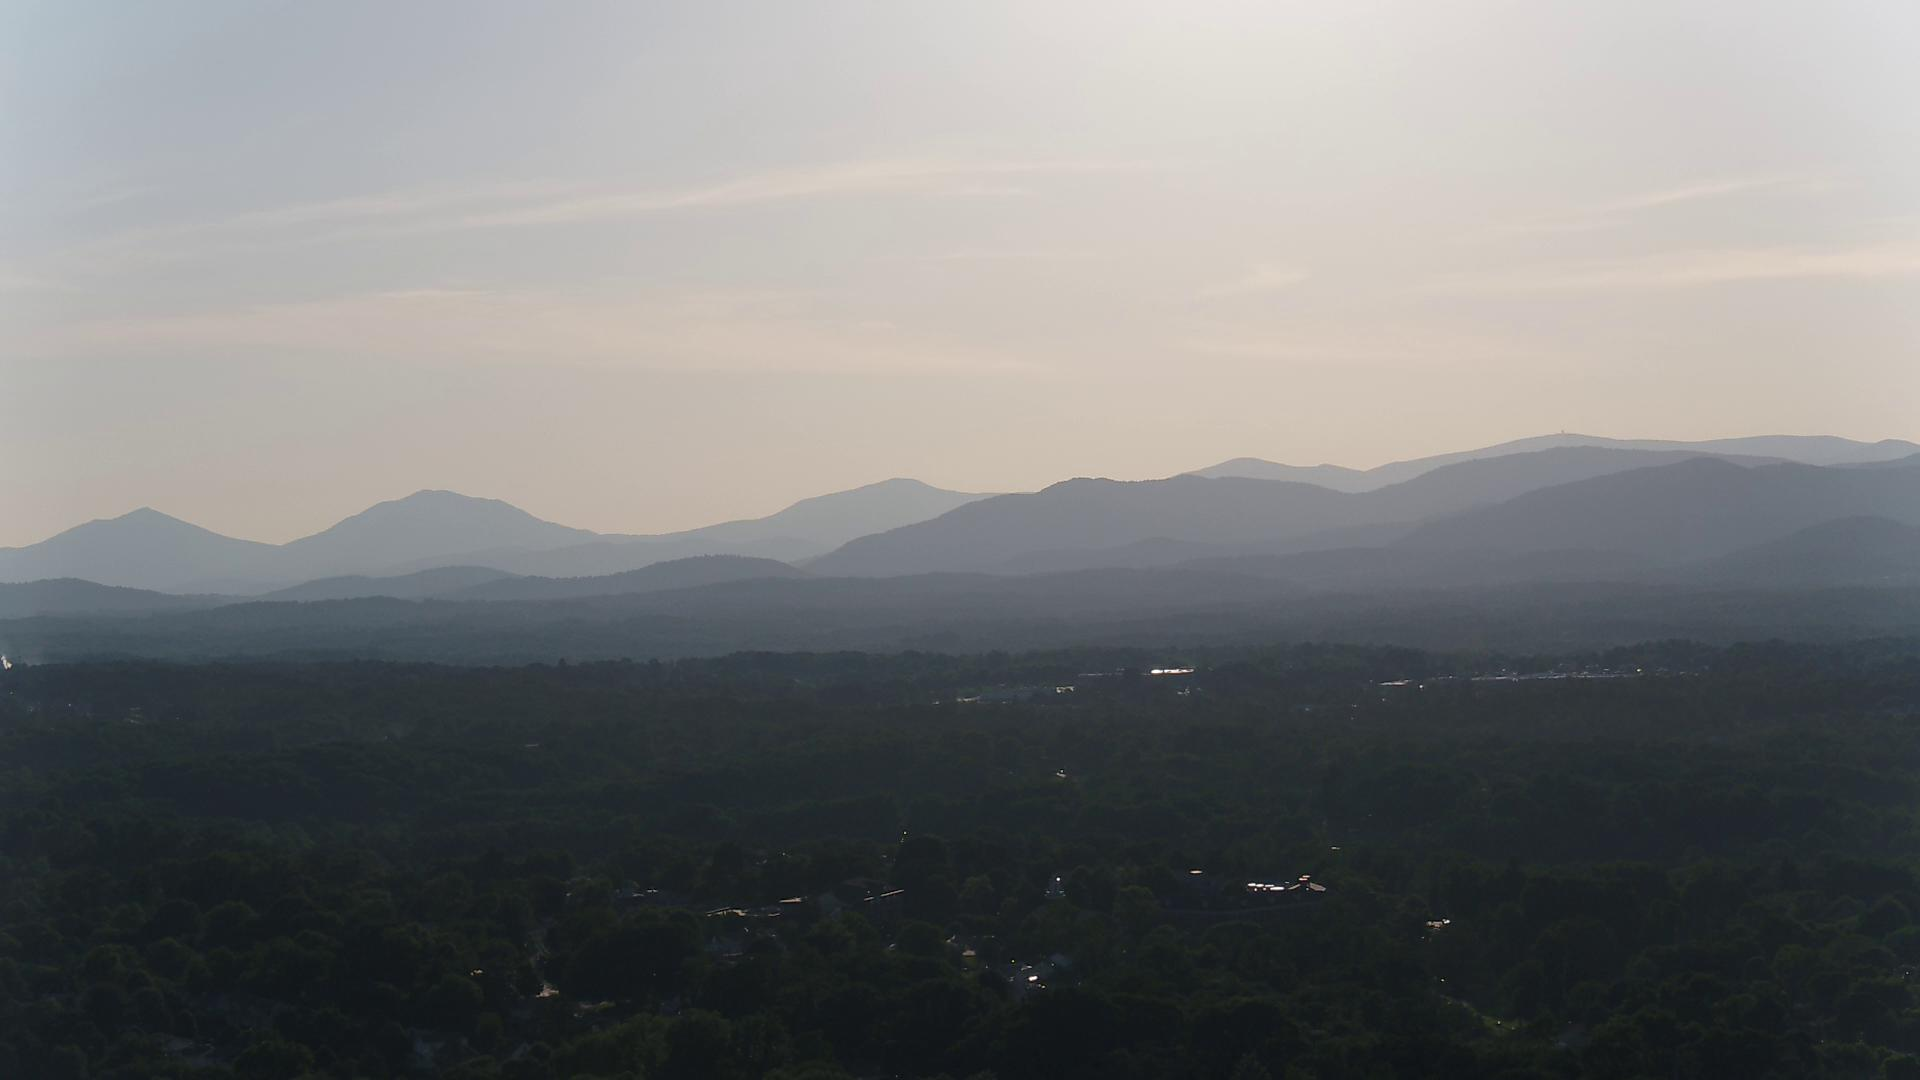 Sky 13 view of Blue Ridge Mountains